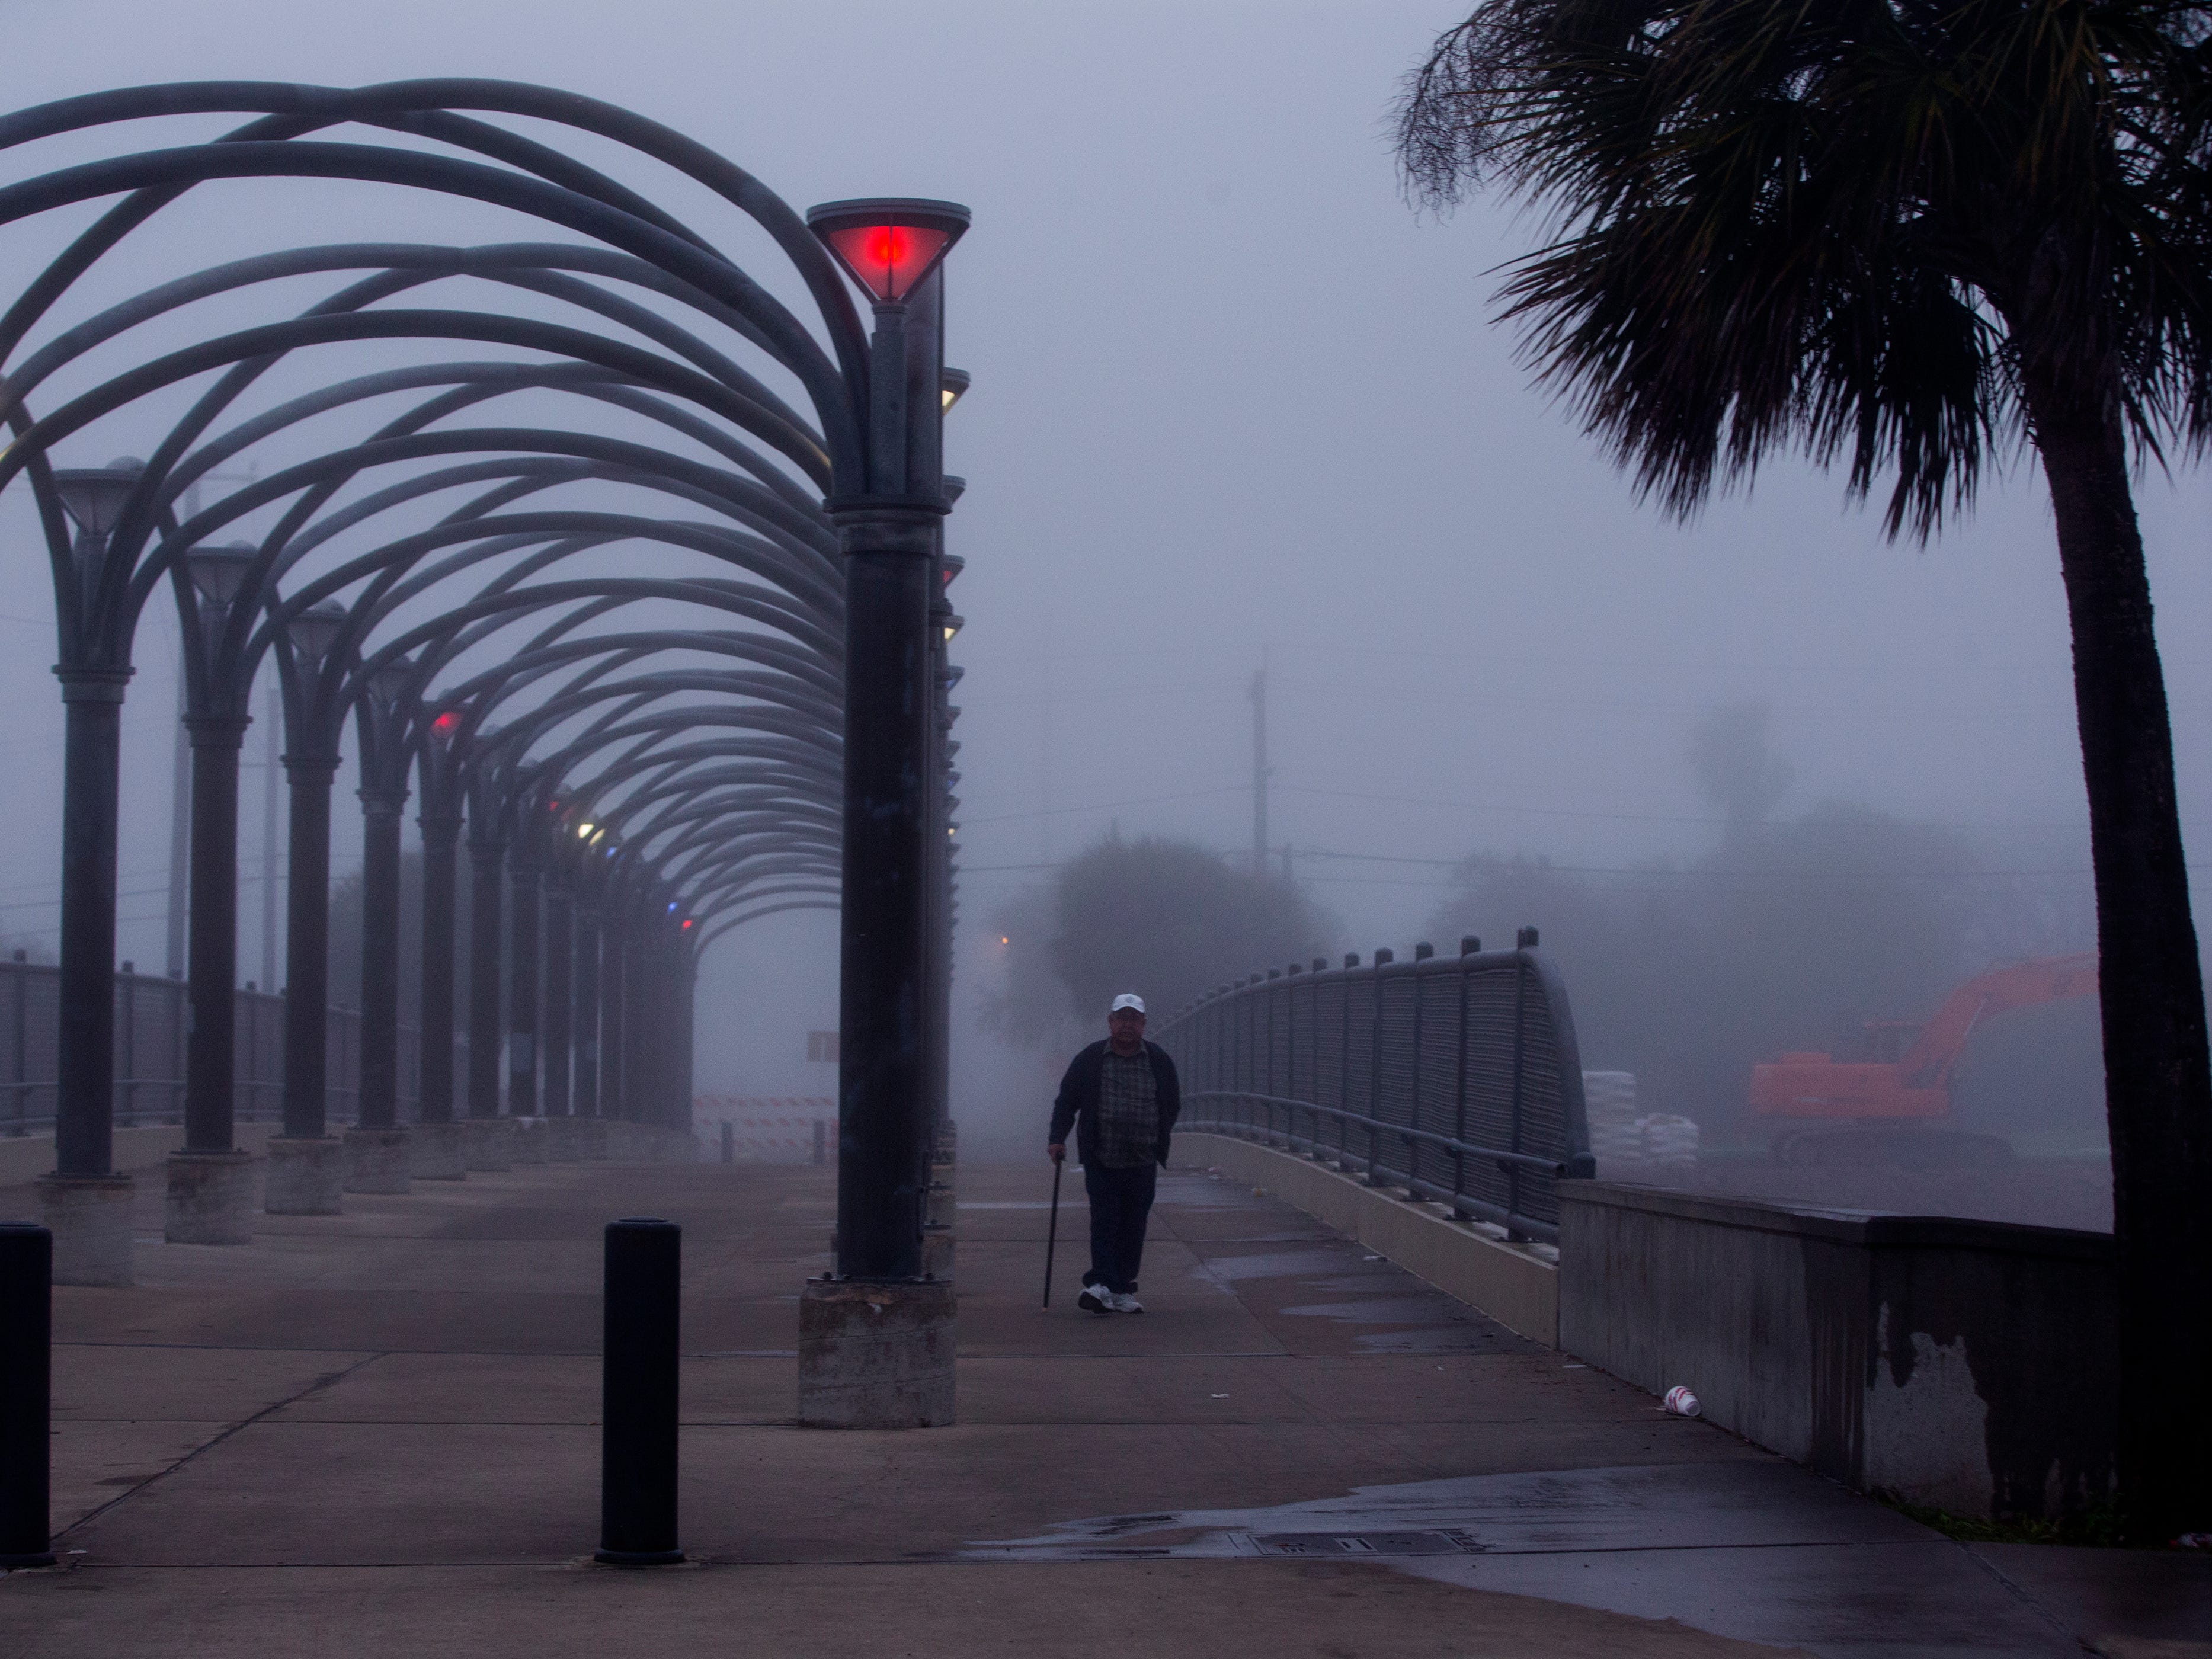 A man crosses over Interstate-37 on a pedestrian bridge on Monday, March 11, 2019. Heavy fog rolled through the area.